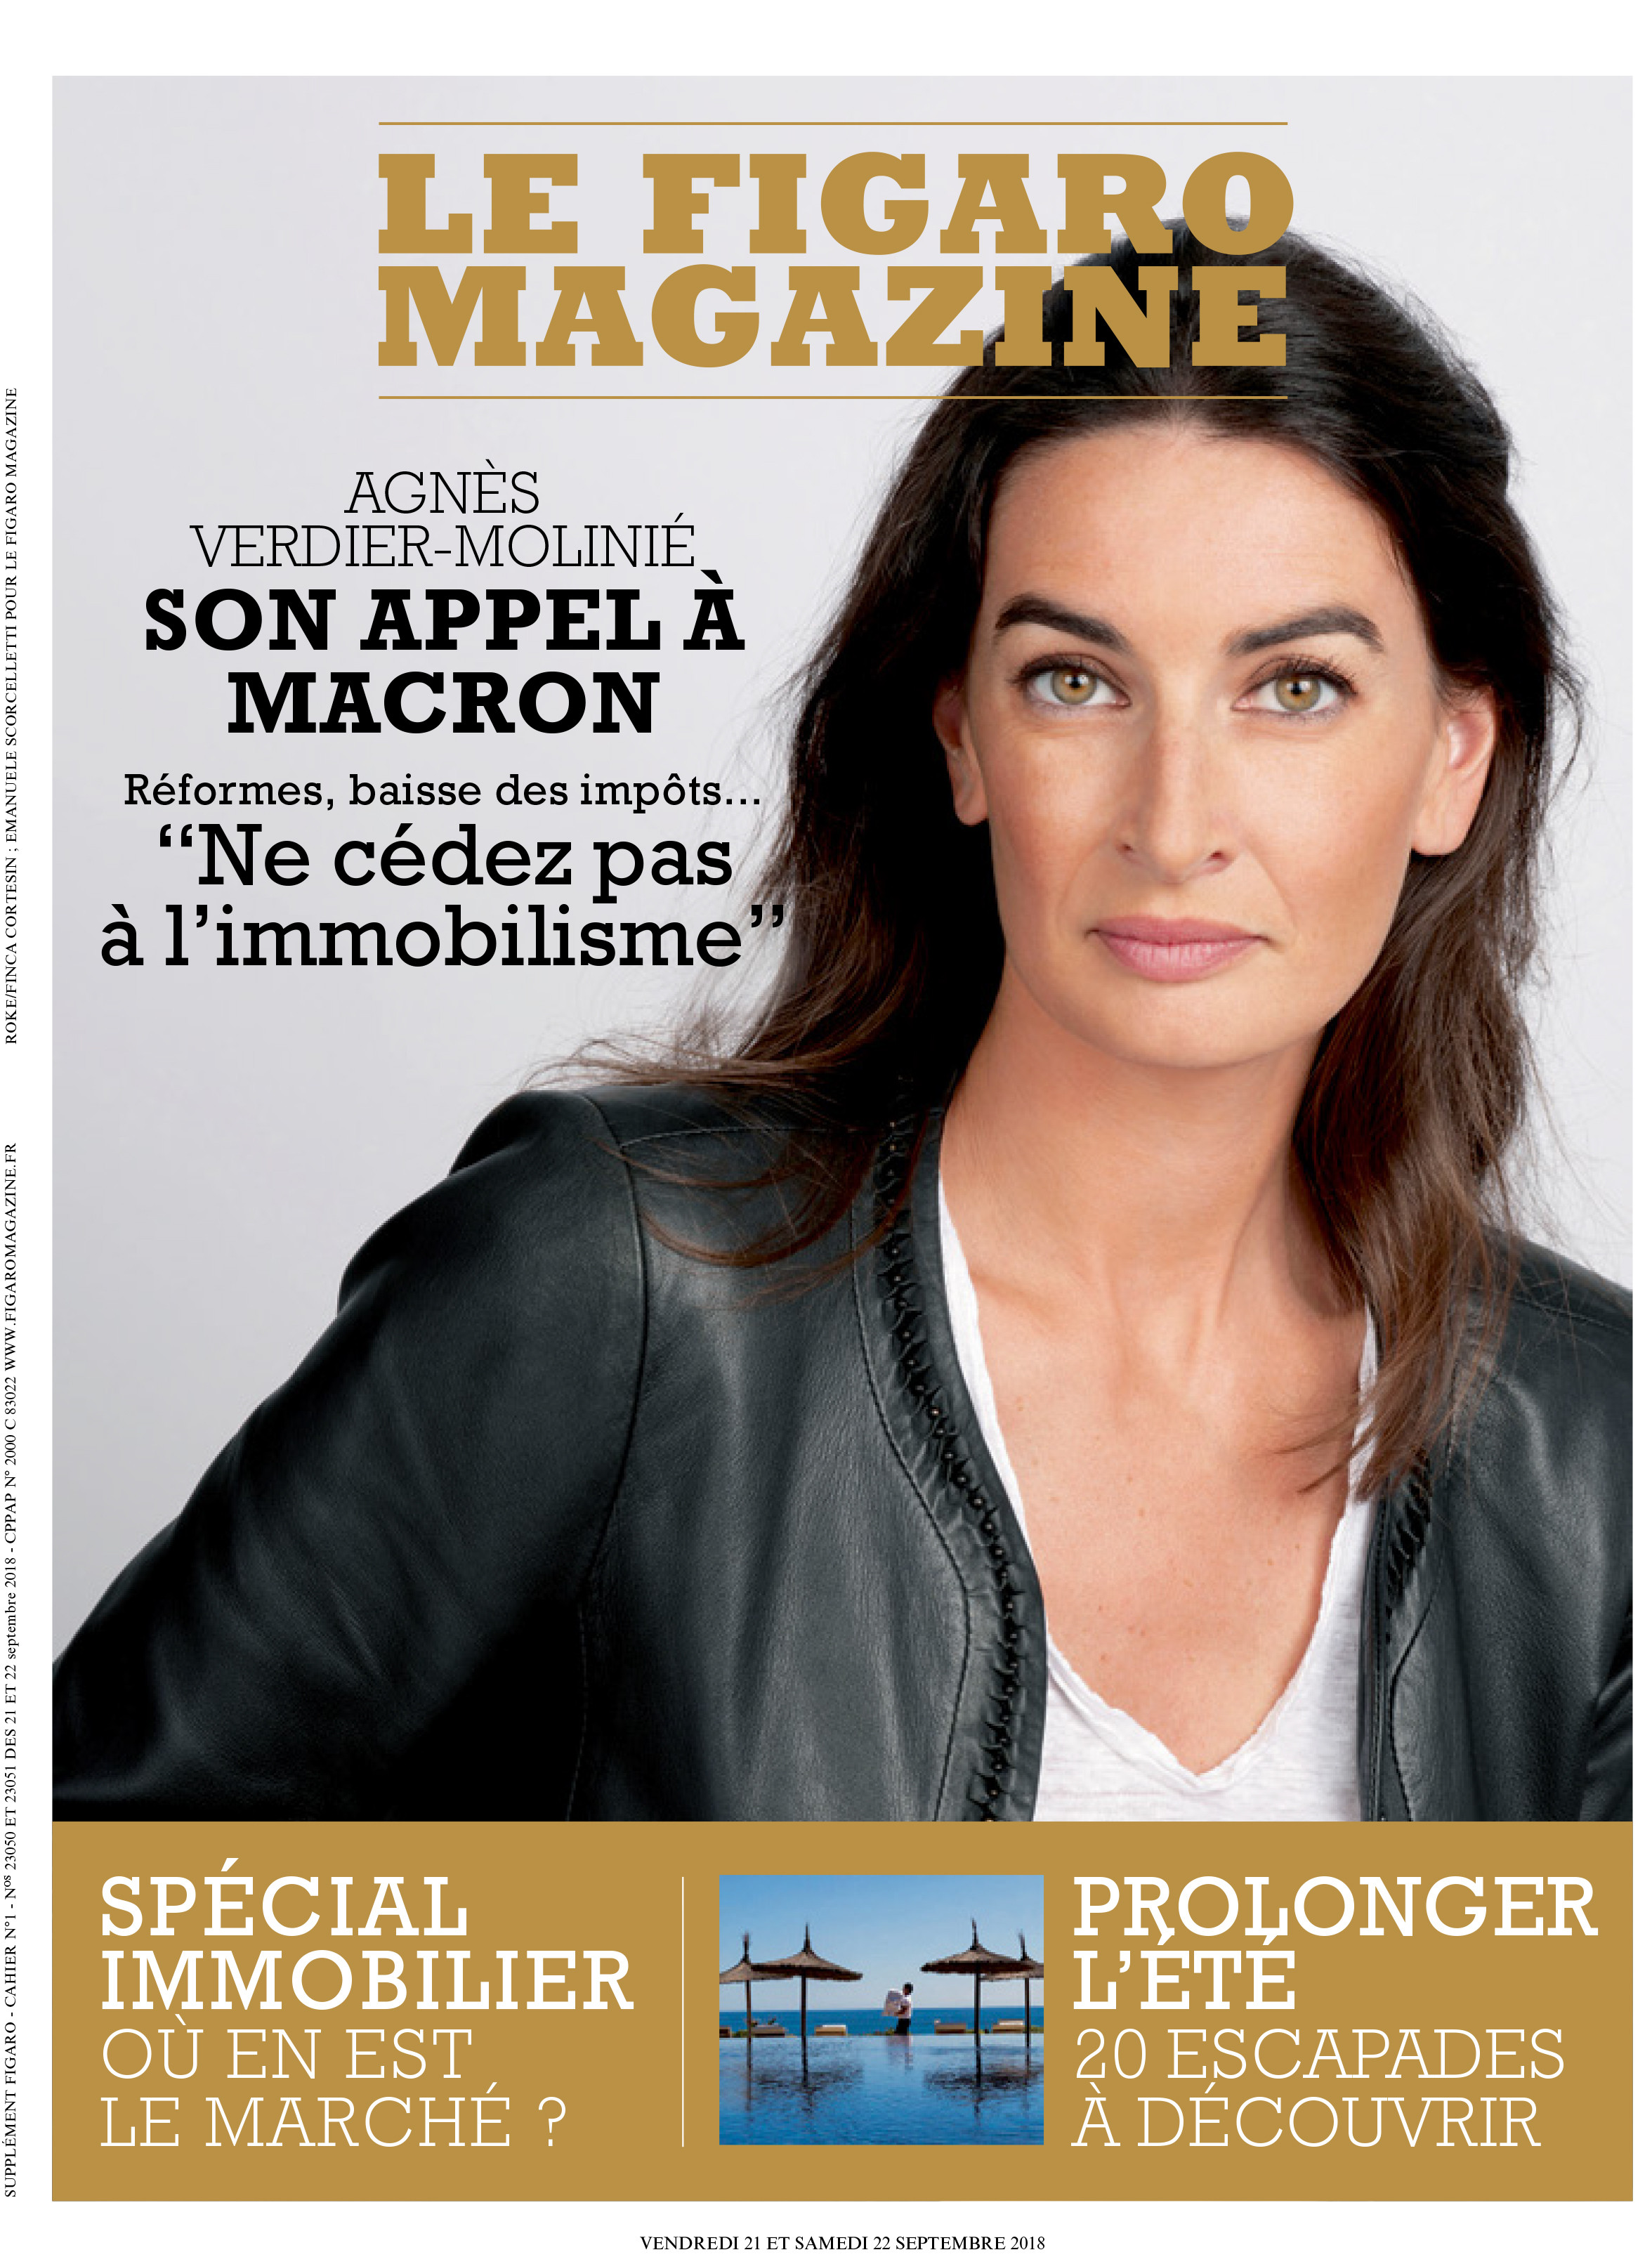 FIGARO MAGAZINE SPÉCIAL IMMOBILIER 21 TO 22 SEPTEMBER 2018